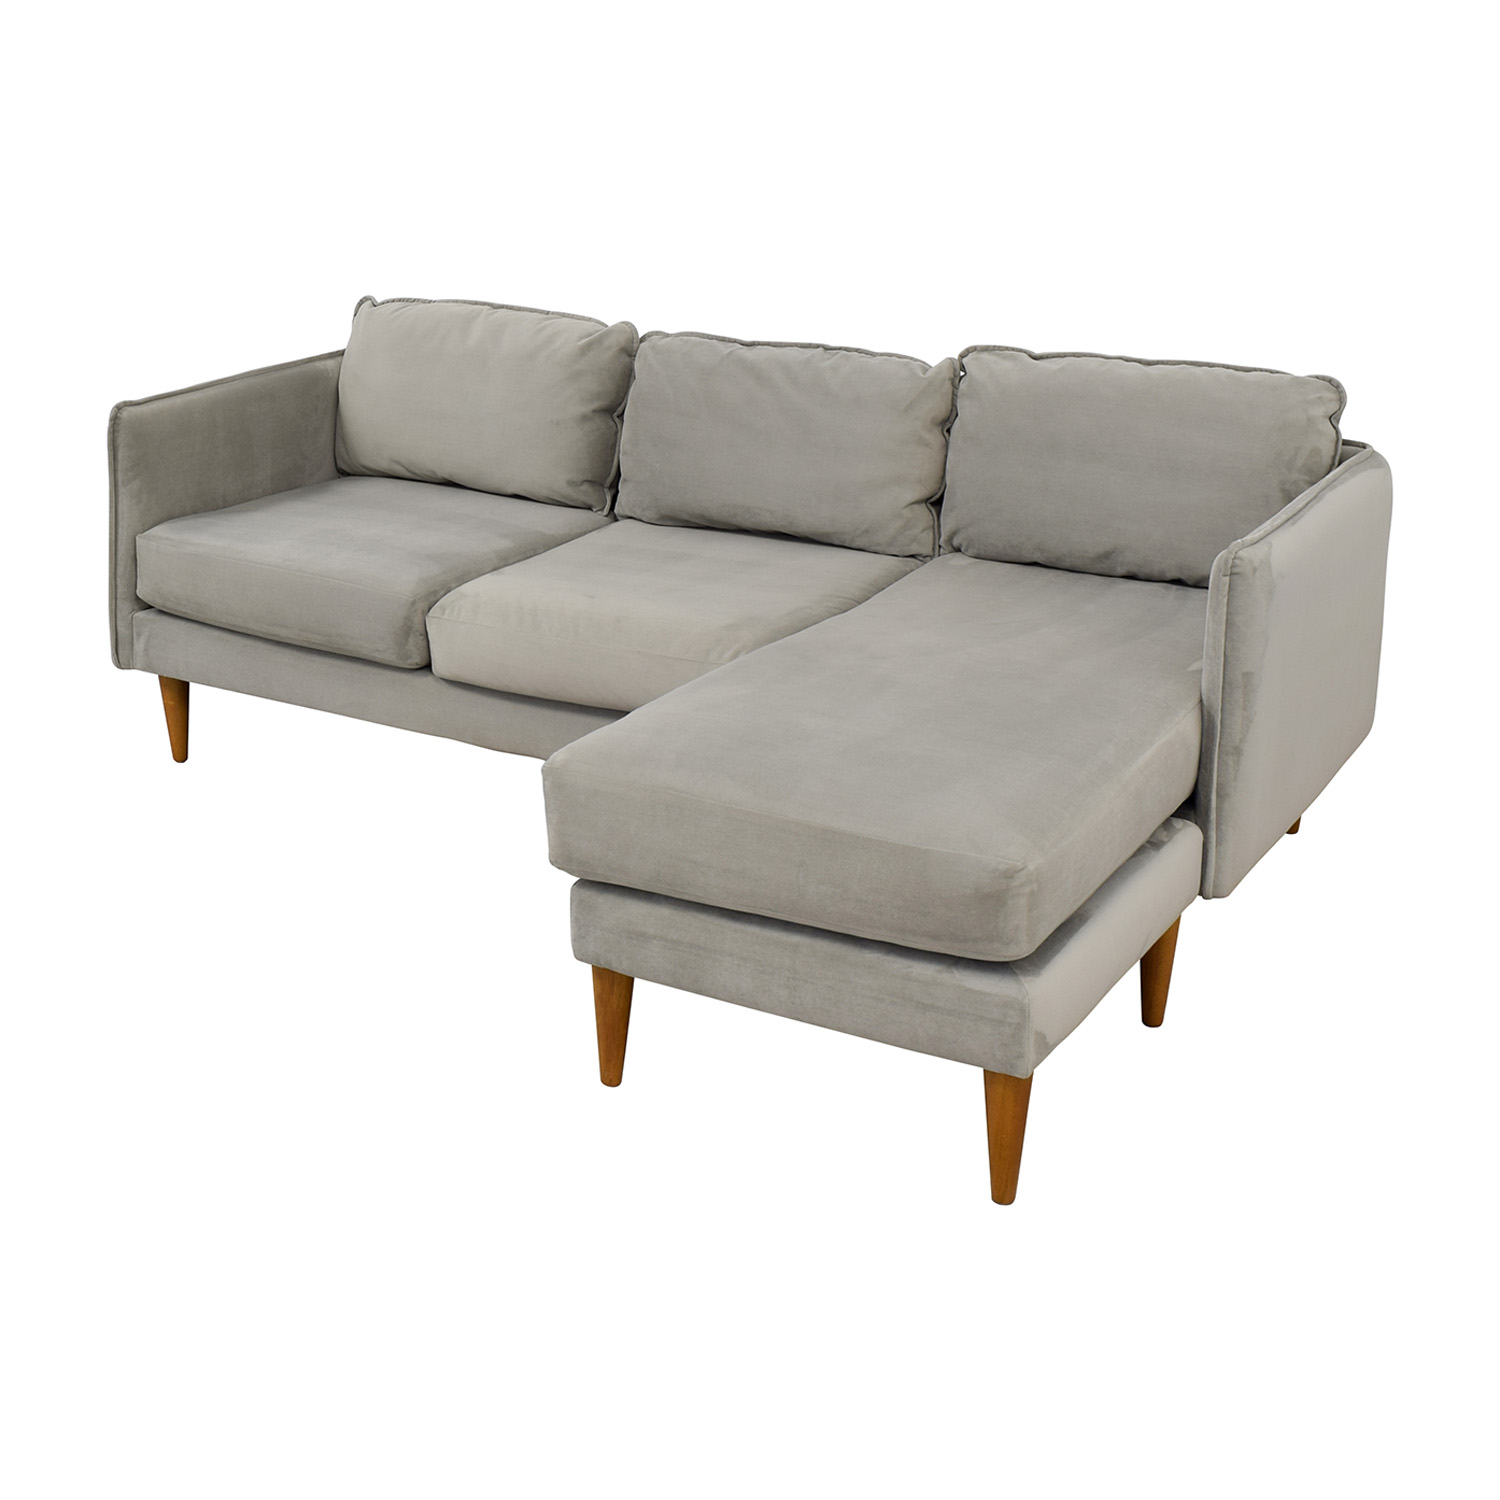 West Elm West Elm Mid Century Chaise Sectional Sofa nyc